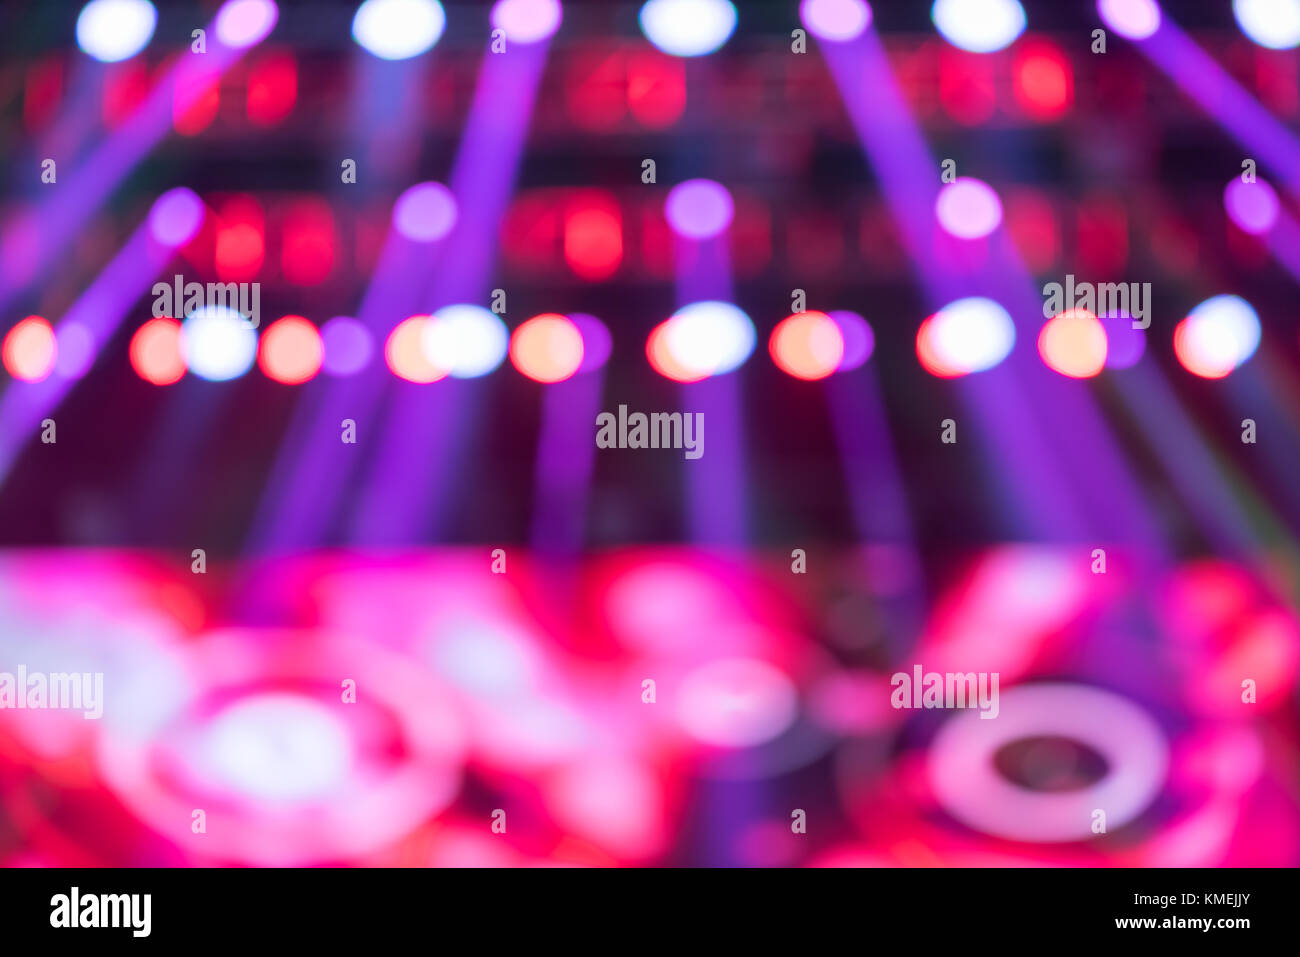 Music live show purple lights blurred background - Stock Image